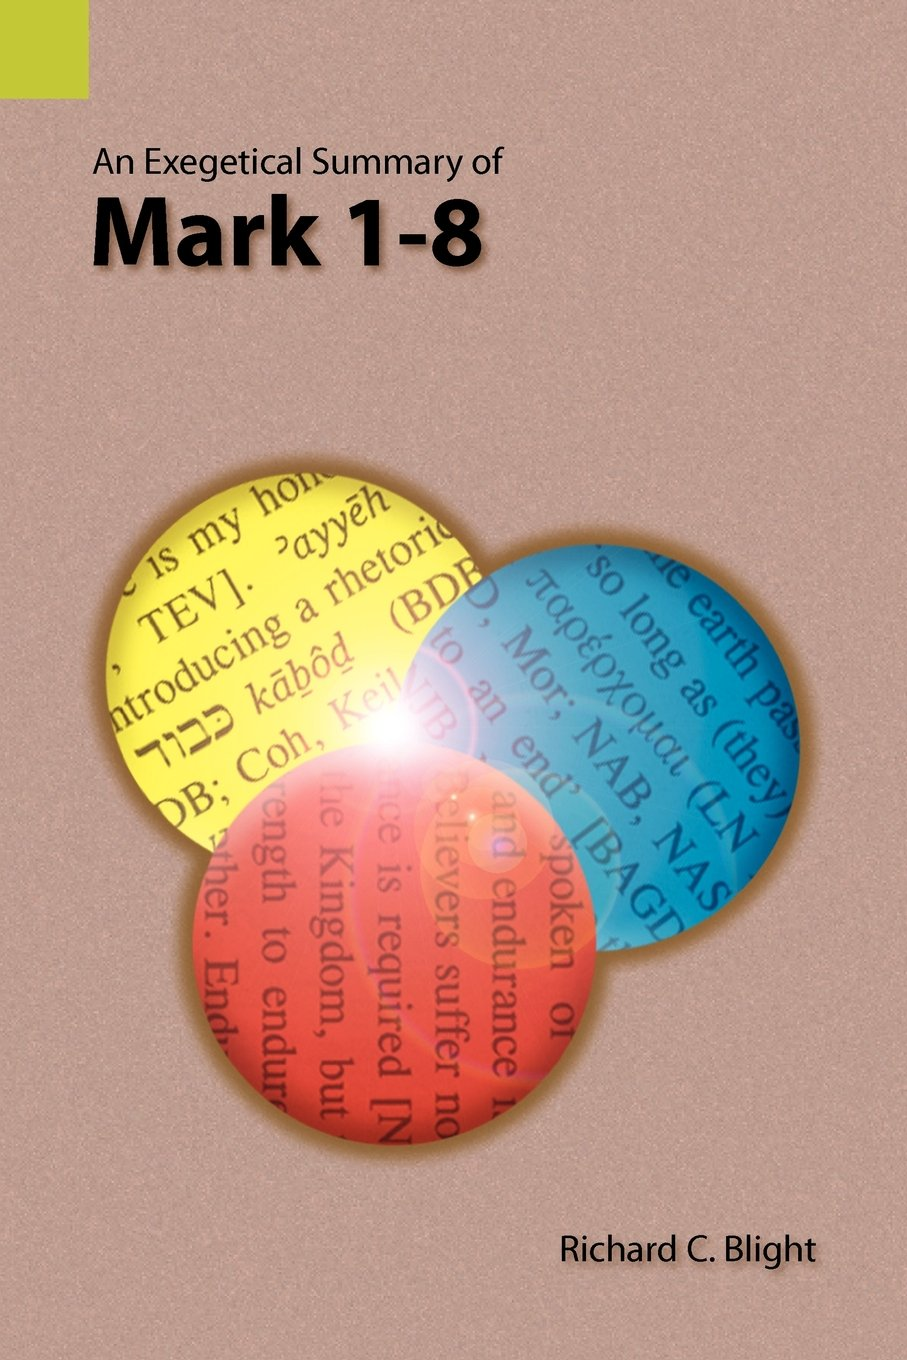 Read Online An Exegetical Summary of Mark 1-8 PDF